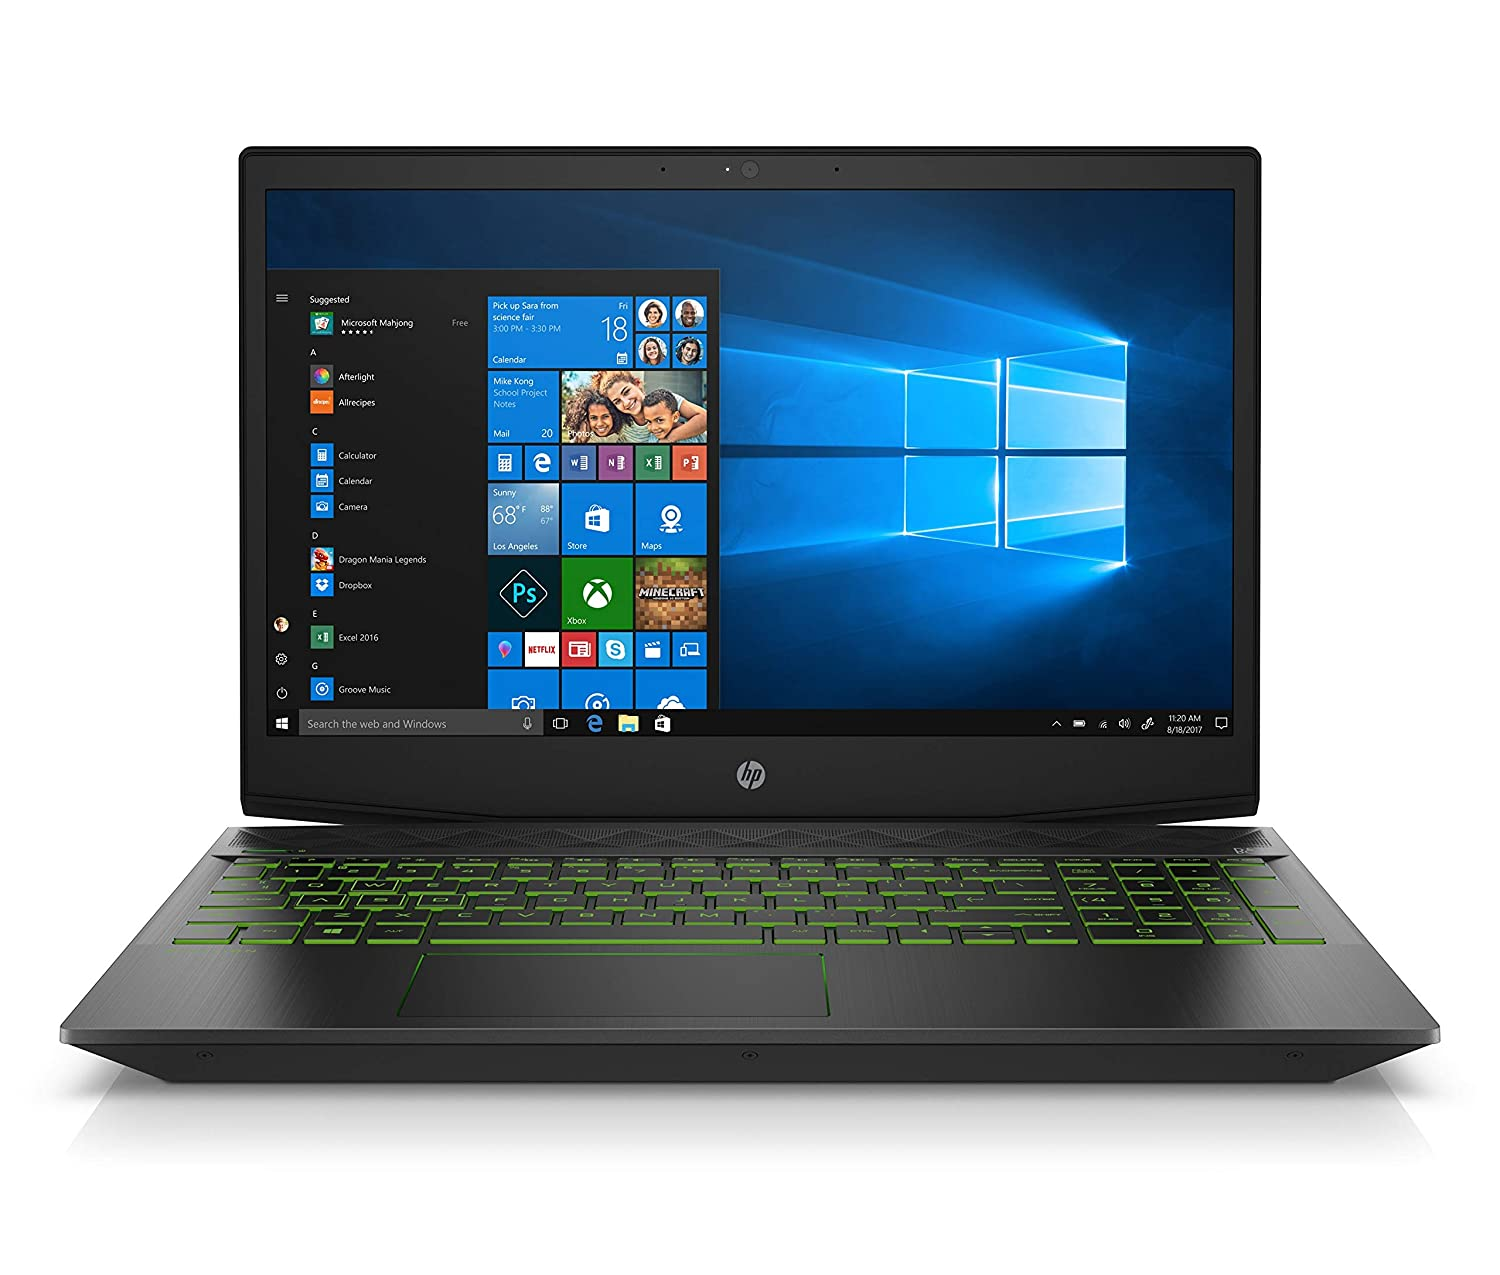 HP Pavilion 15-cx0058wm 15.6in Gaming Notebook – Intel Core i5-8300H, NVIDIA GeForce GTX 1050 4GB GPU, 8GB RAM, 16 GB Intel Optane 1TB HDD Storage, Windows 10 Renewed